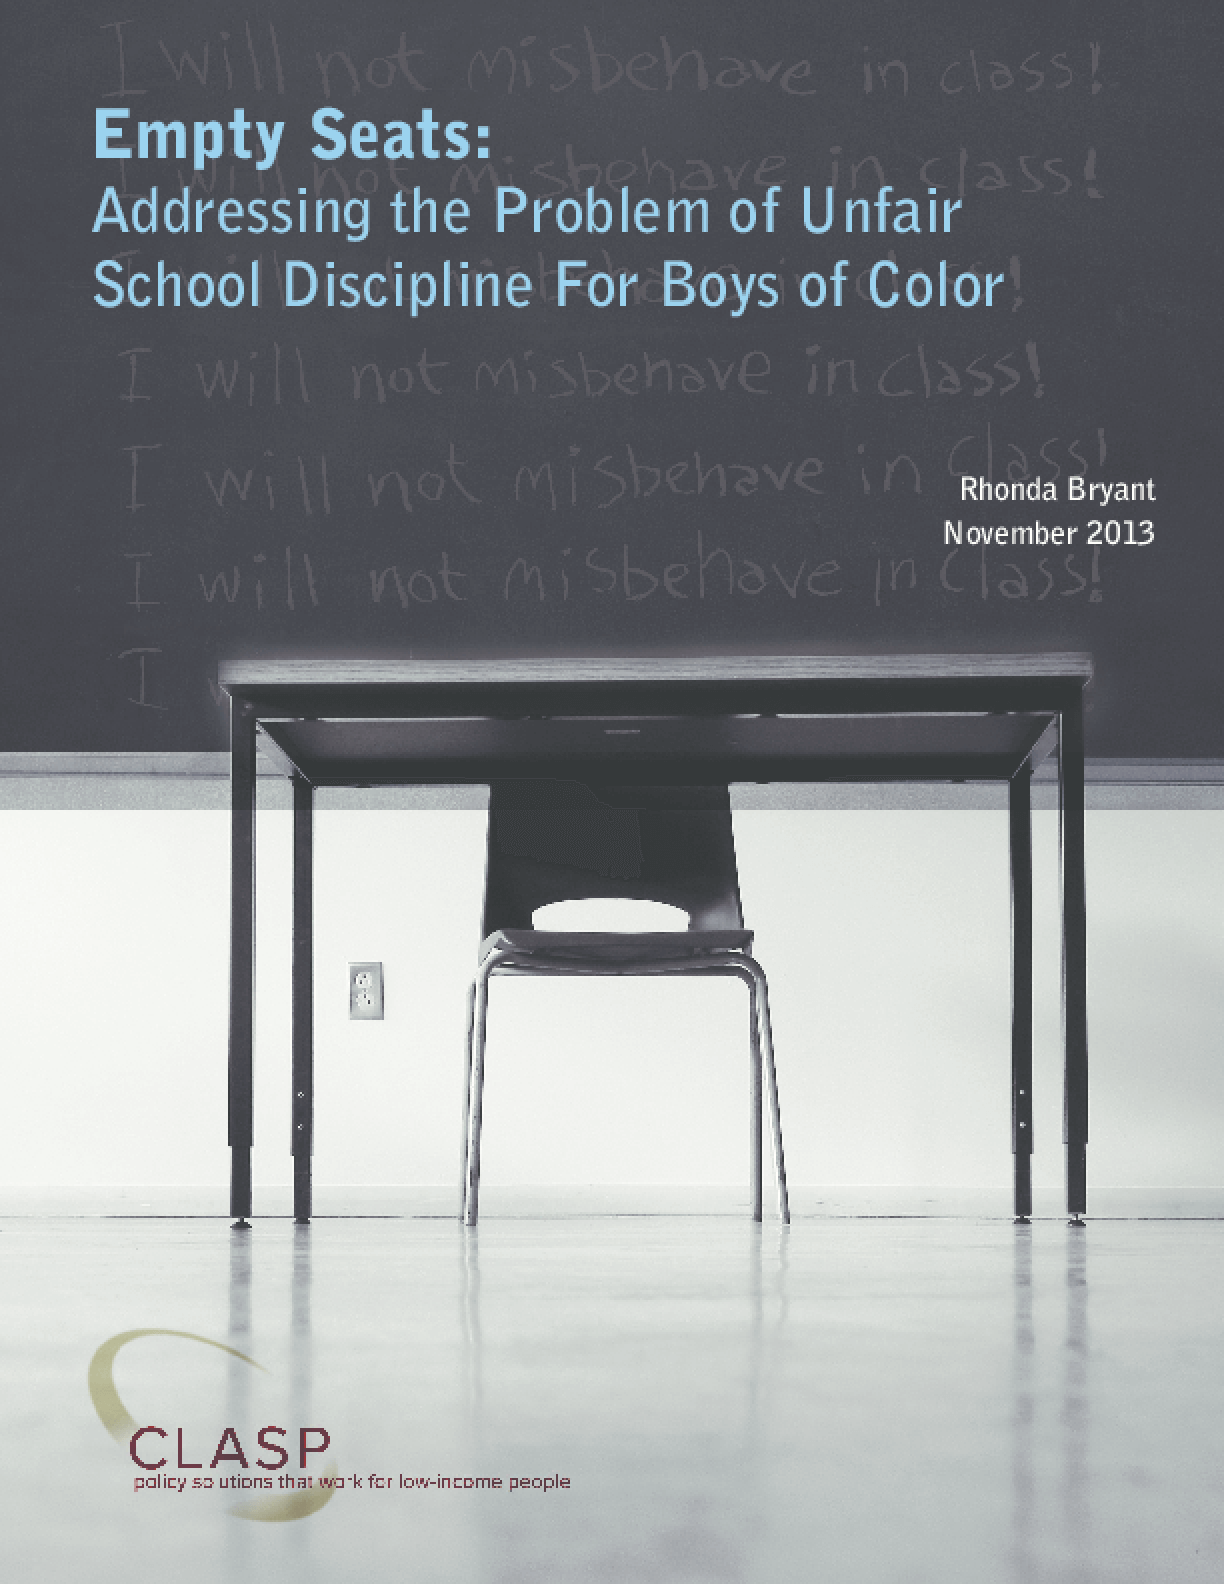 Empty Seats: Addressing the Problem of Unfair School Discipline for Boys of Color